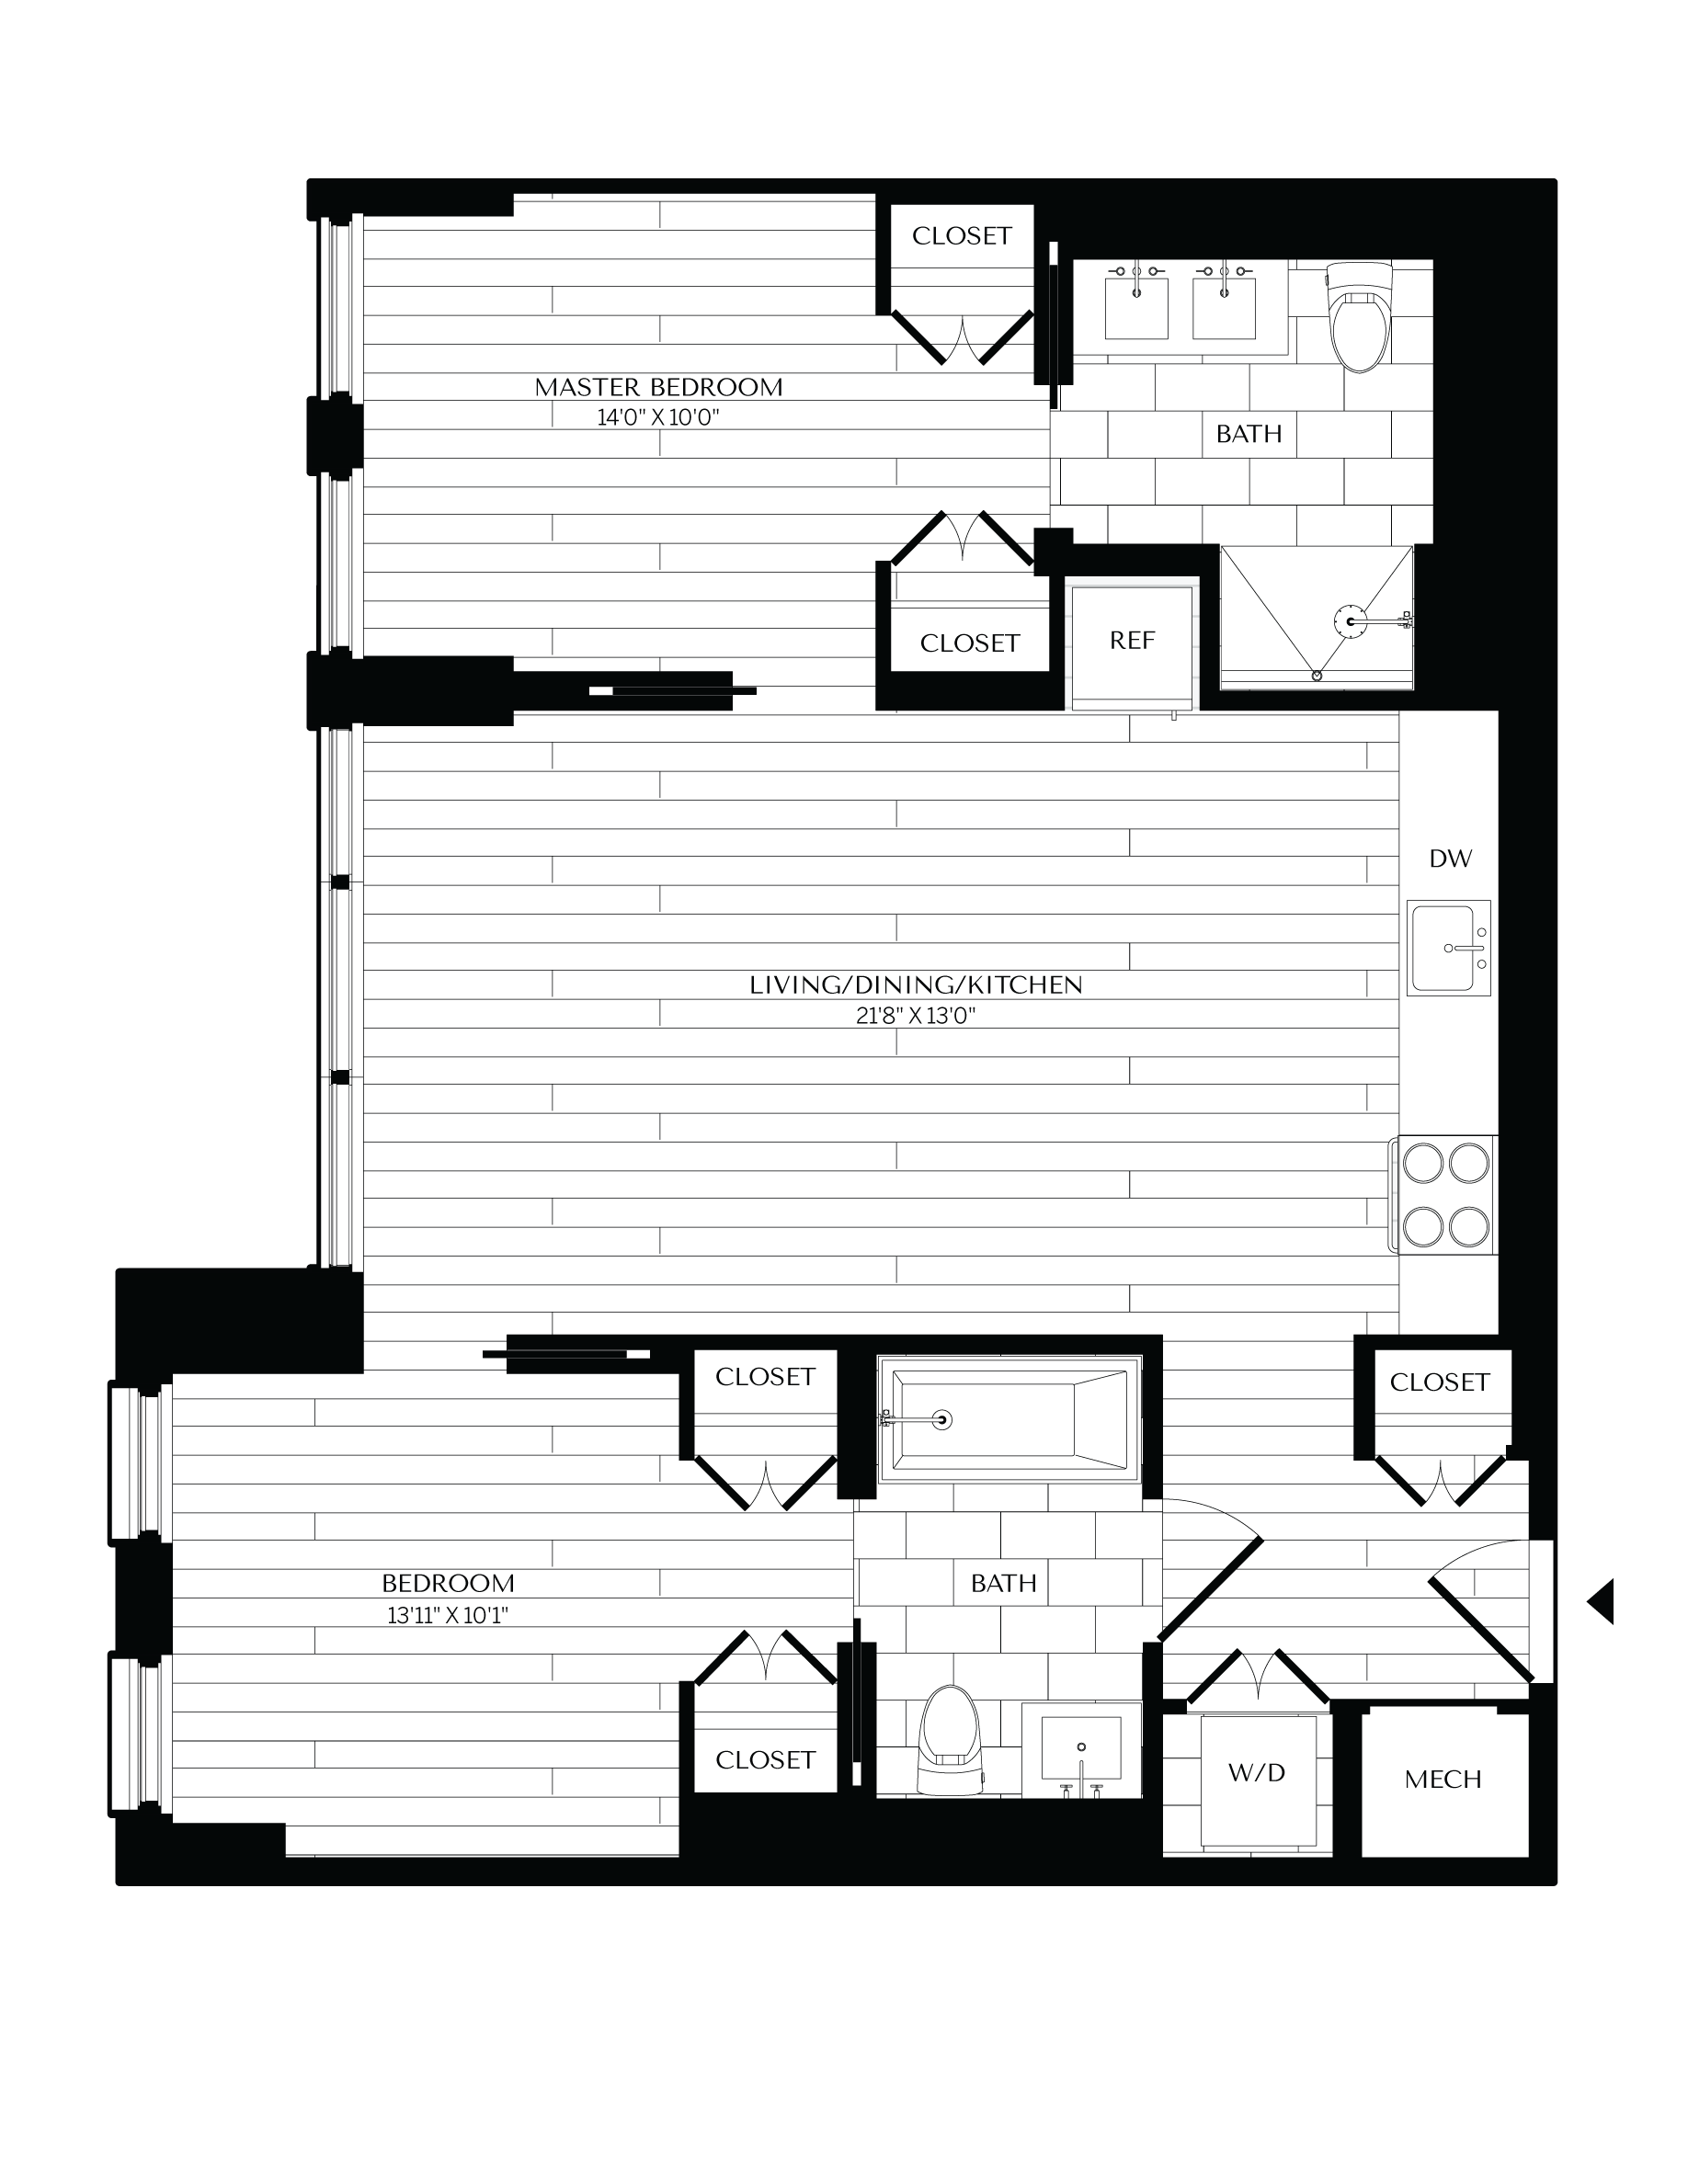 Floorplan image of unit 0502